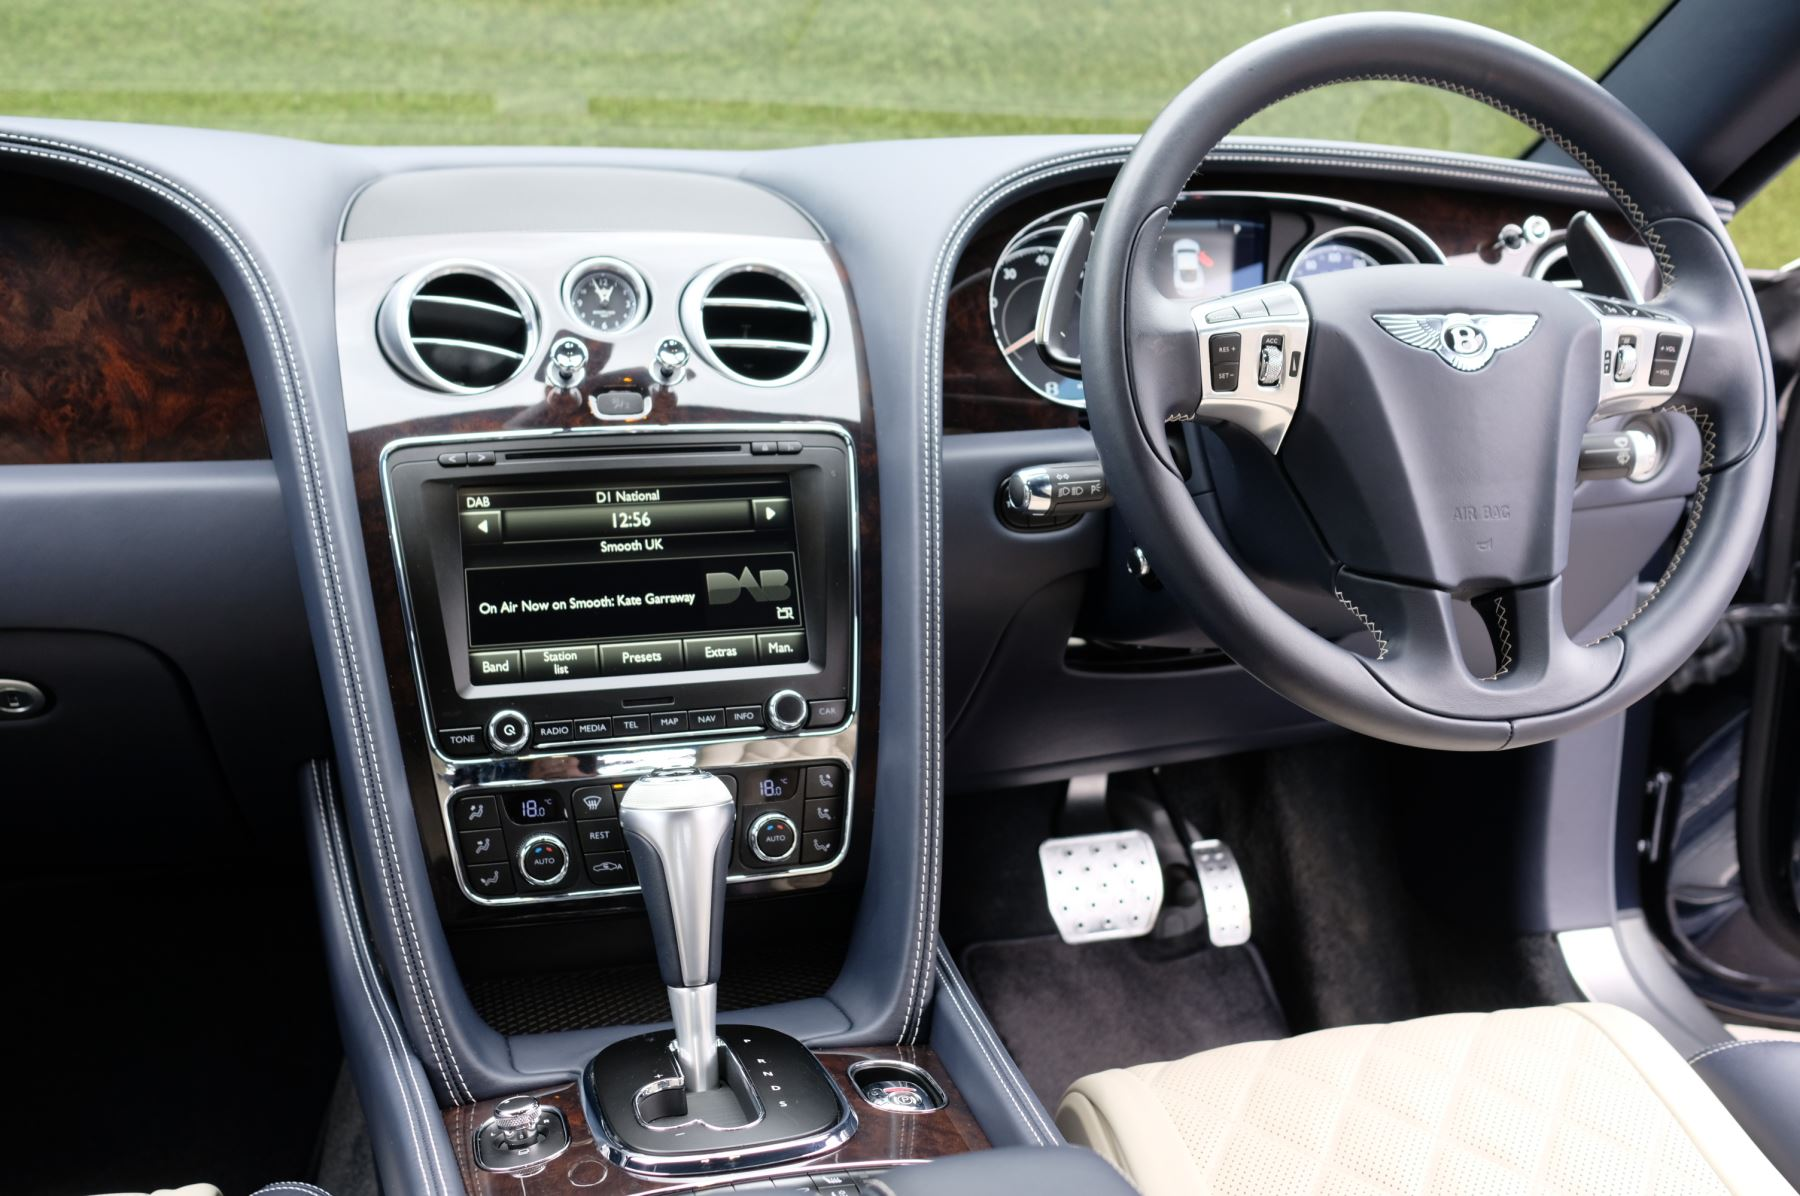 Bentley Continental GT 6.0 W12 [635] Speed - 21 inch Directional Sports Alloys - Ventilated Front Seats with Massage image 16